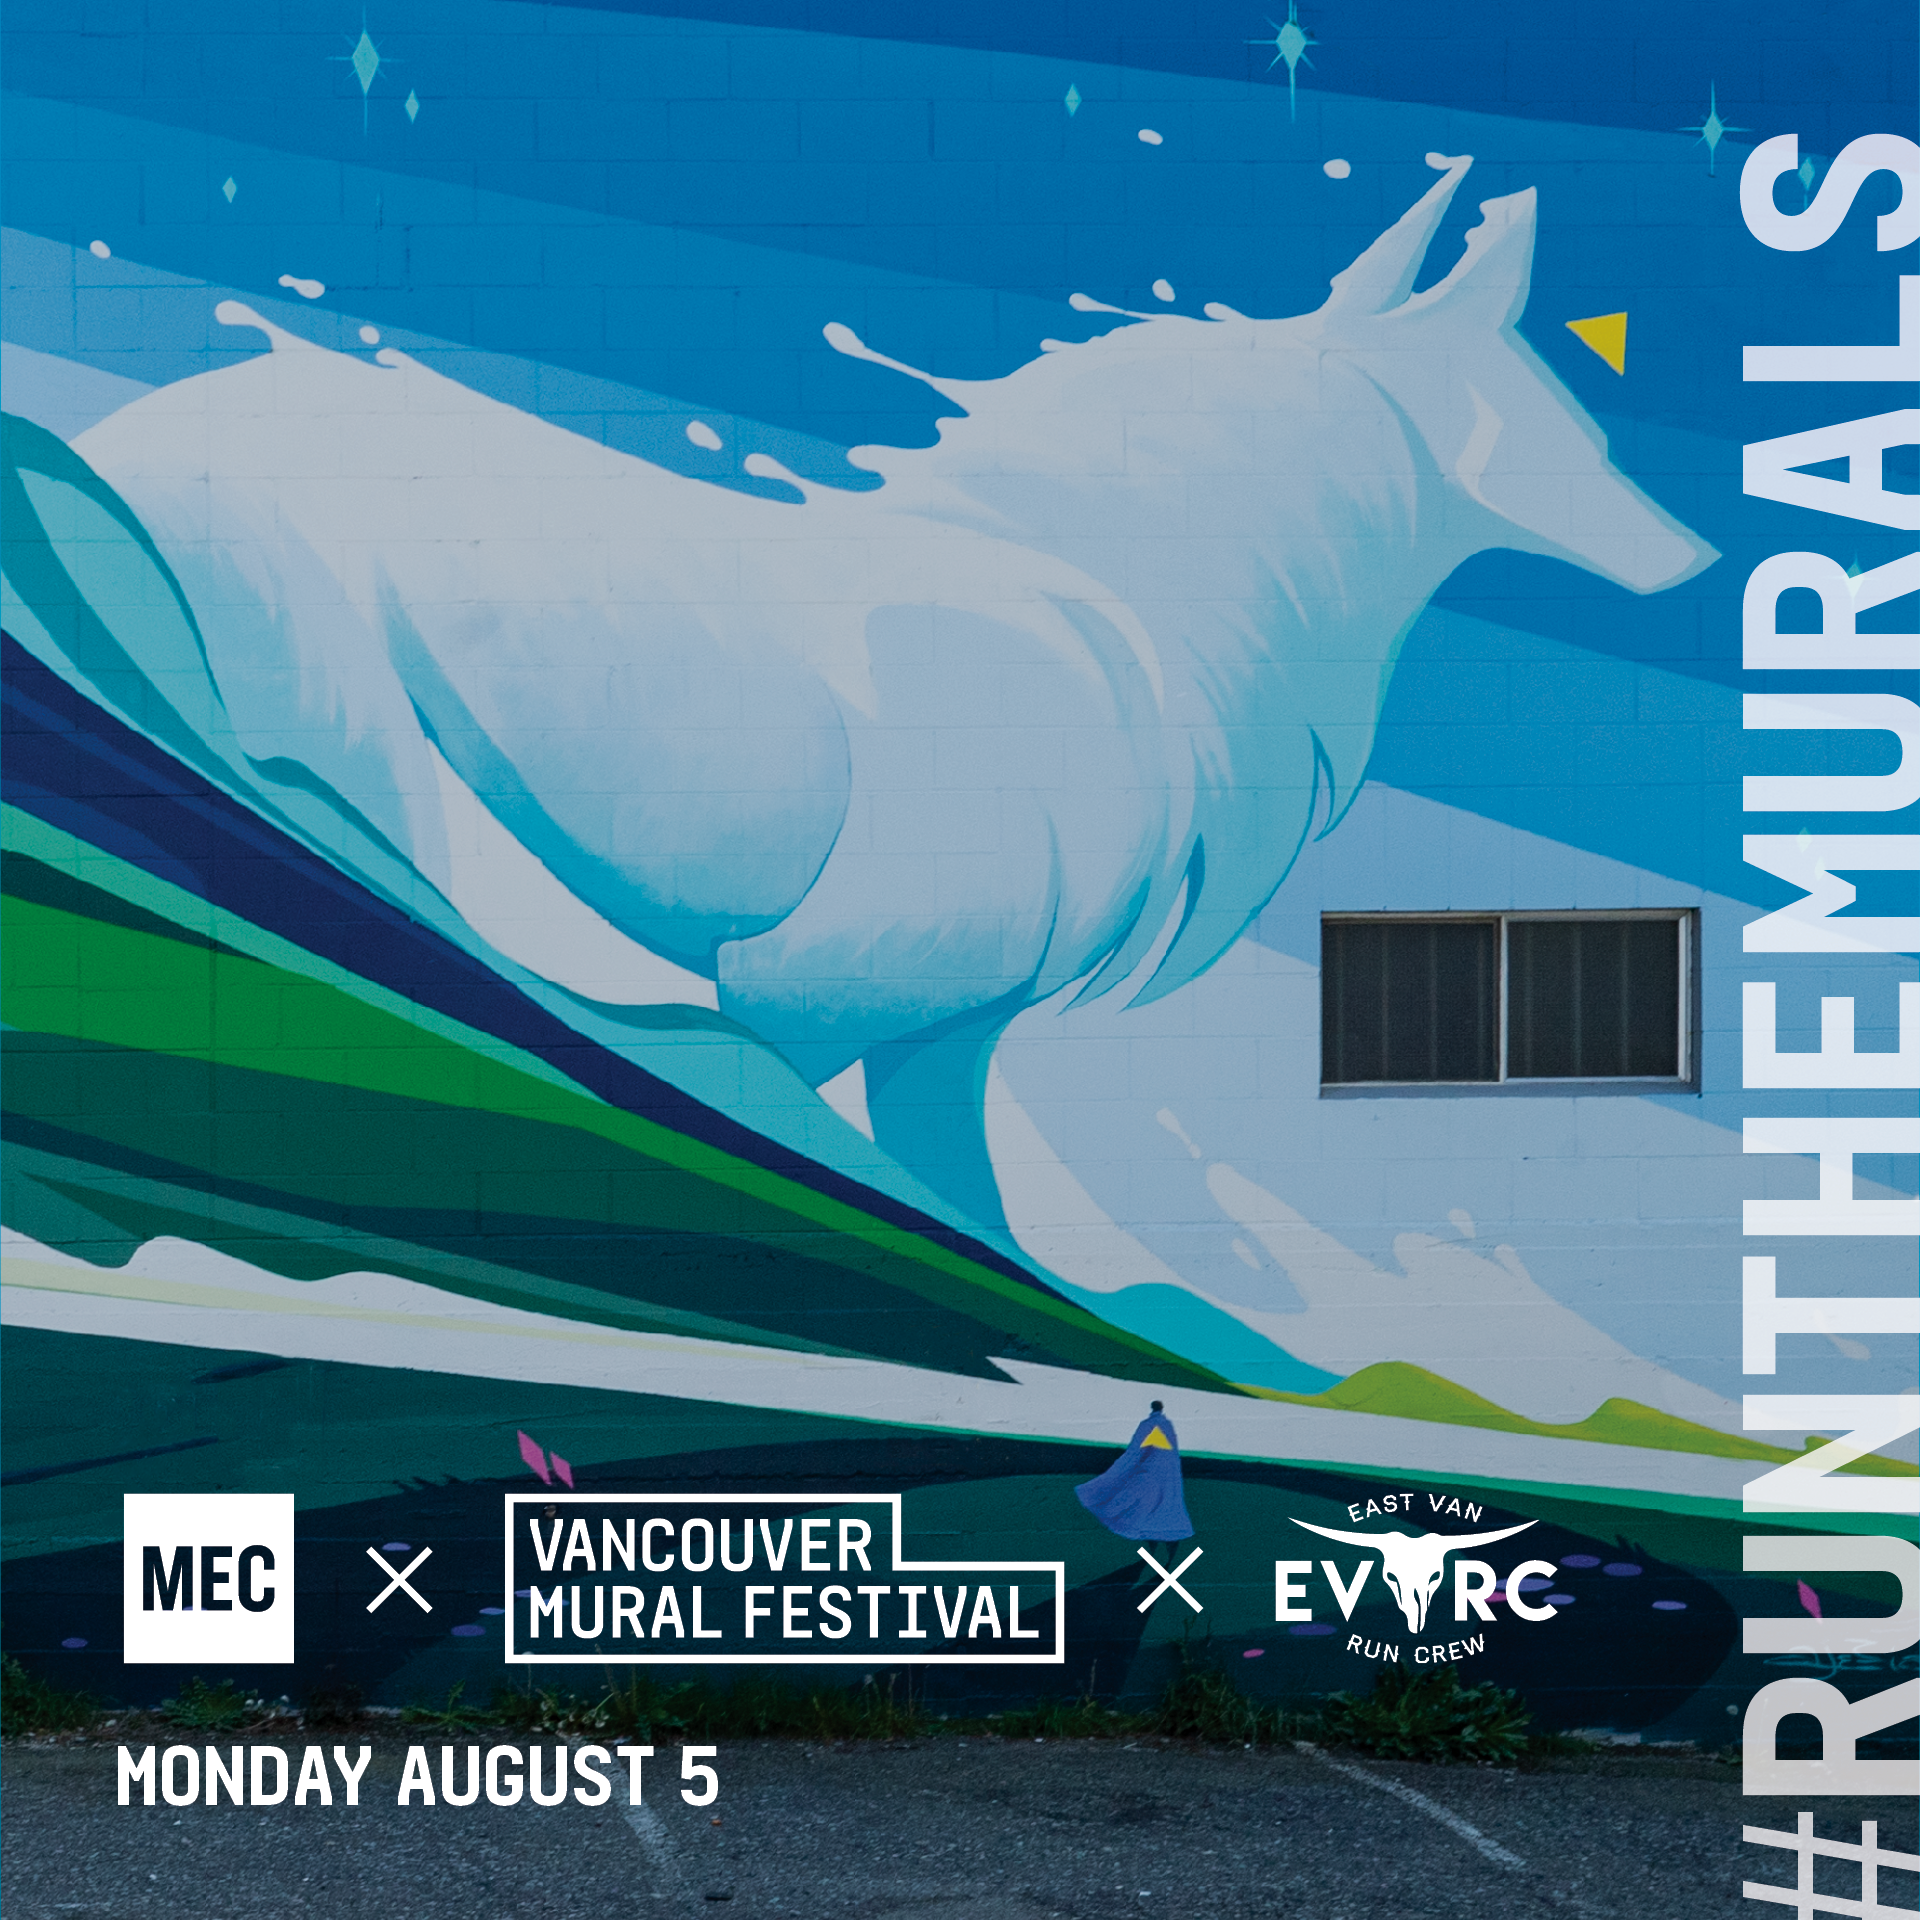 Cost: FREE   MEC and Vancouver Mural Fest have partnered up to create a unique running experience called #RunTheMurals. Together we have curated a running route that highlights some of the city's best public art.  Join MEC and  East Van Run Crew  on Monday, August 5th for an ~7K run that explores the beautiful streets and alleyways of Mount Pleasant and discover the art and culture that is right here in our backyard. Post-run we will be hanging out at the legendary Brewhall for some light snacks and give-aways!  This run will be replacing the regular East Van Run Crew meet-up.  Register here:  https://events.mec.ca/node/268271